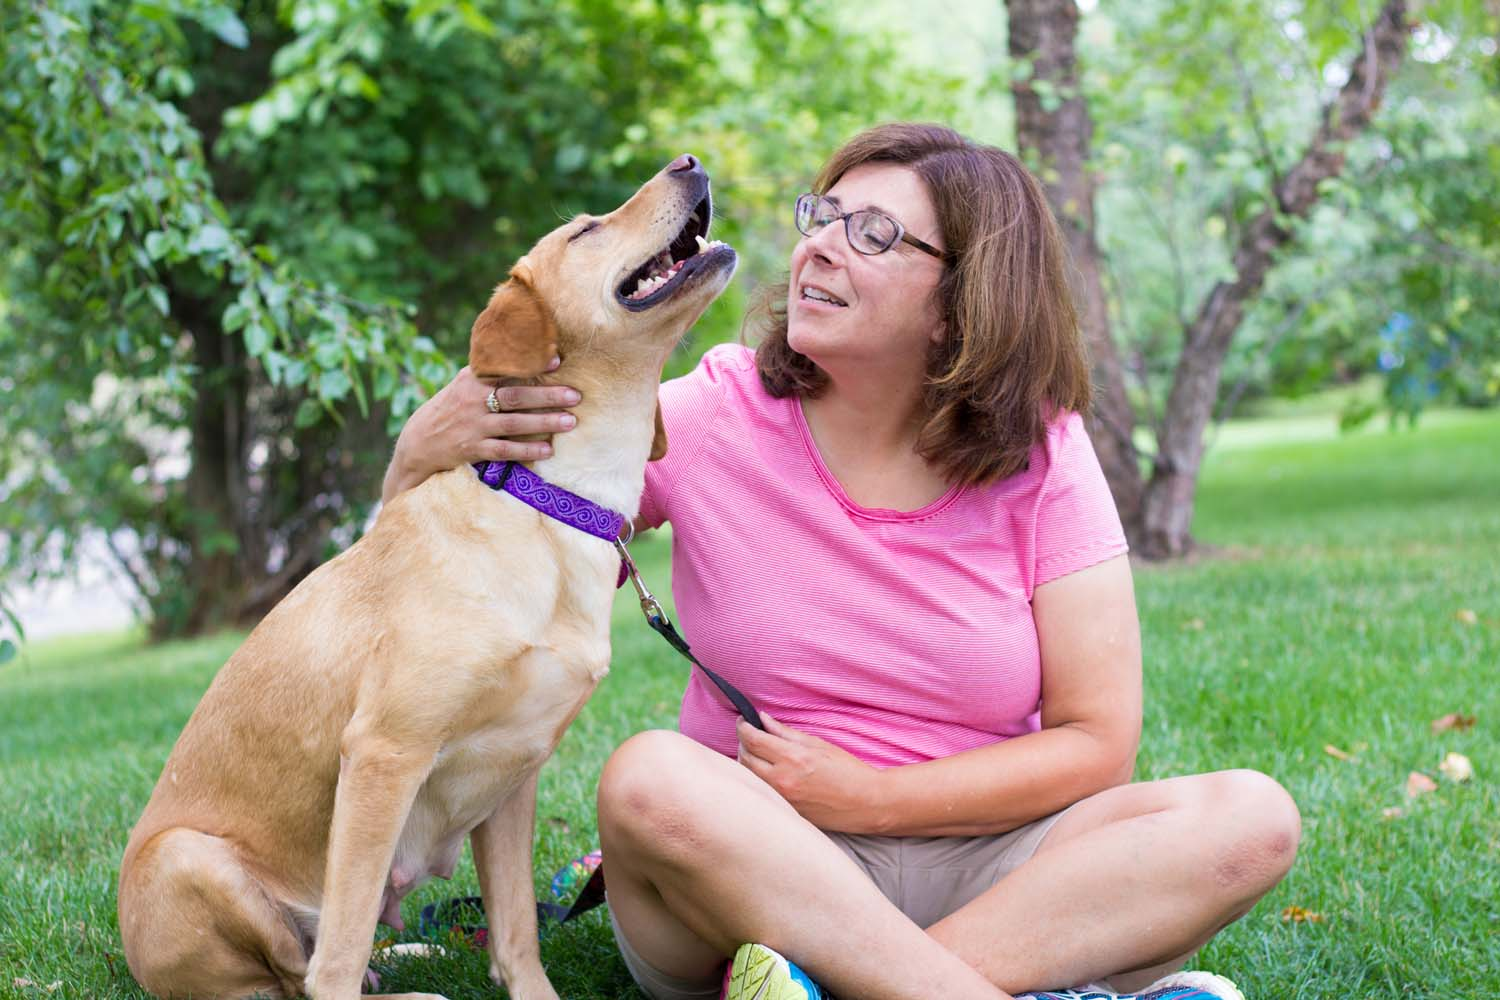 Woman sitting in grass with happy dog